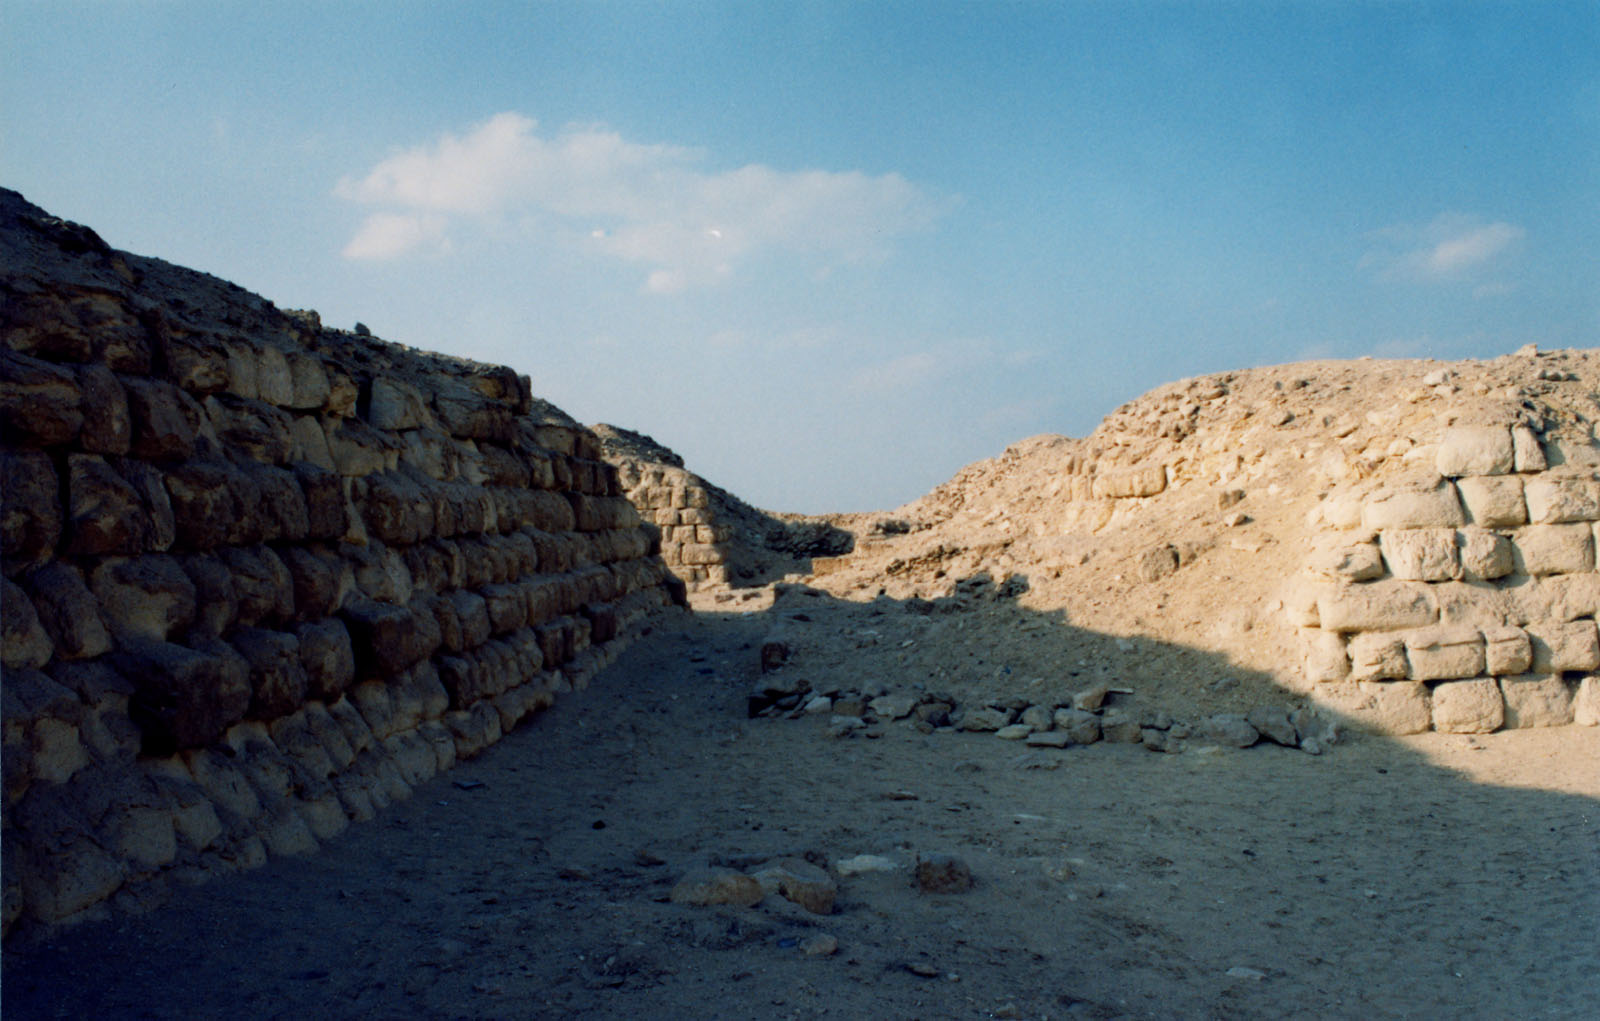 Western Cemetery: Site: Giza; View: G 2160 G 2180, G 2165, G 2166, G 2167, G 2168, G 2170